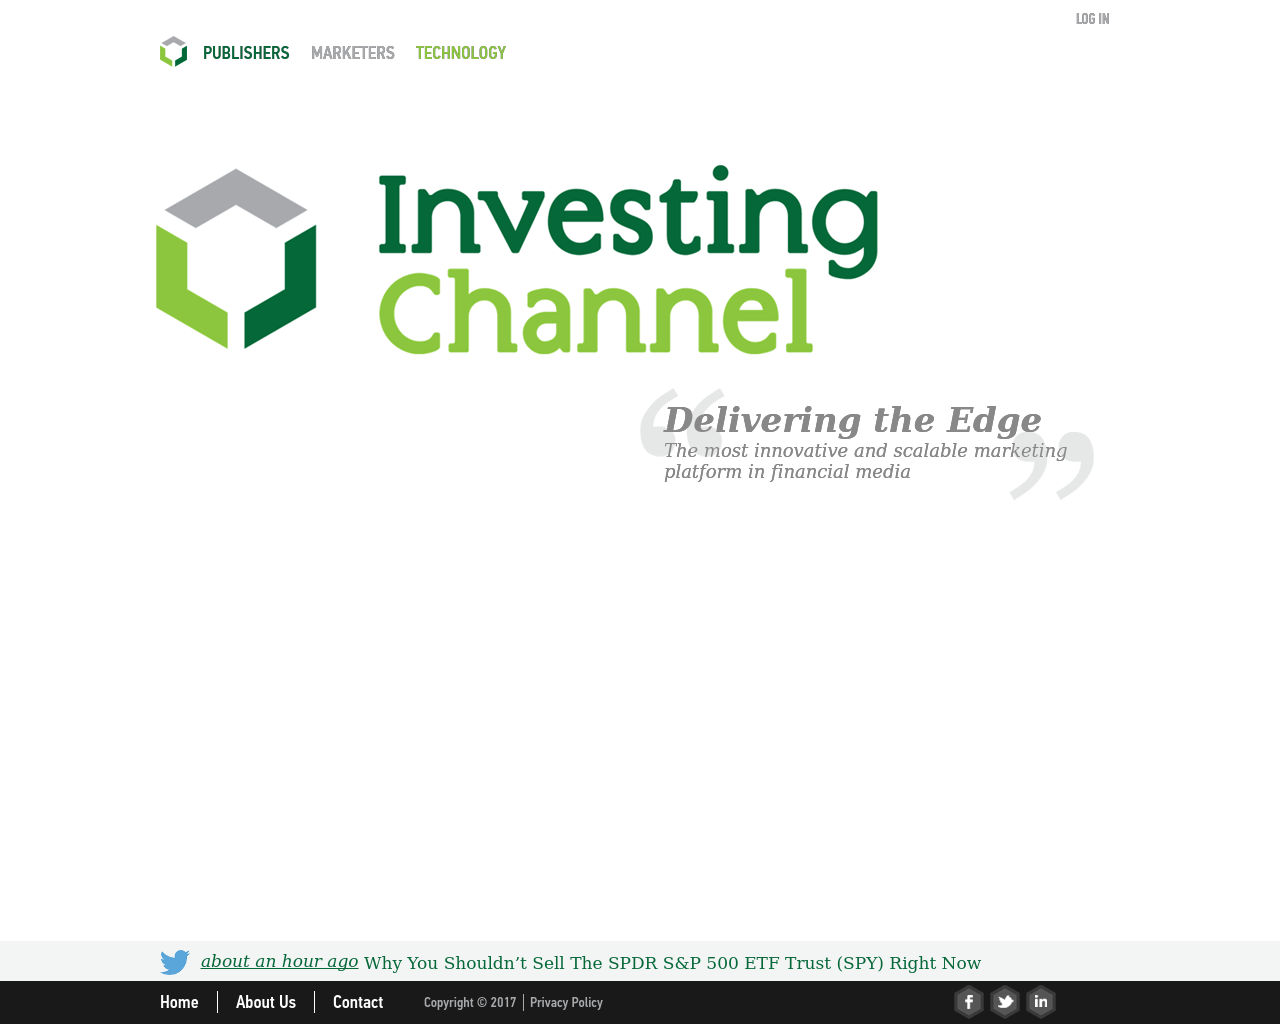 Investing-Channel-Advertising-Reviews-Pricing